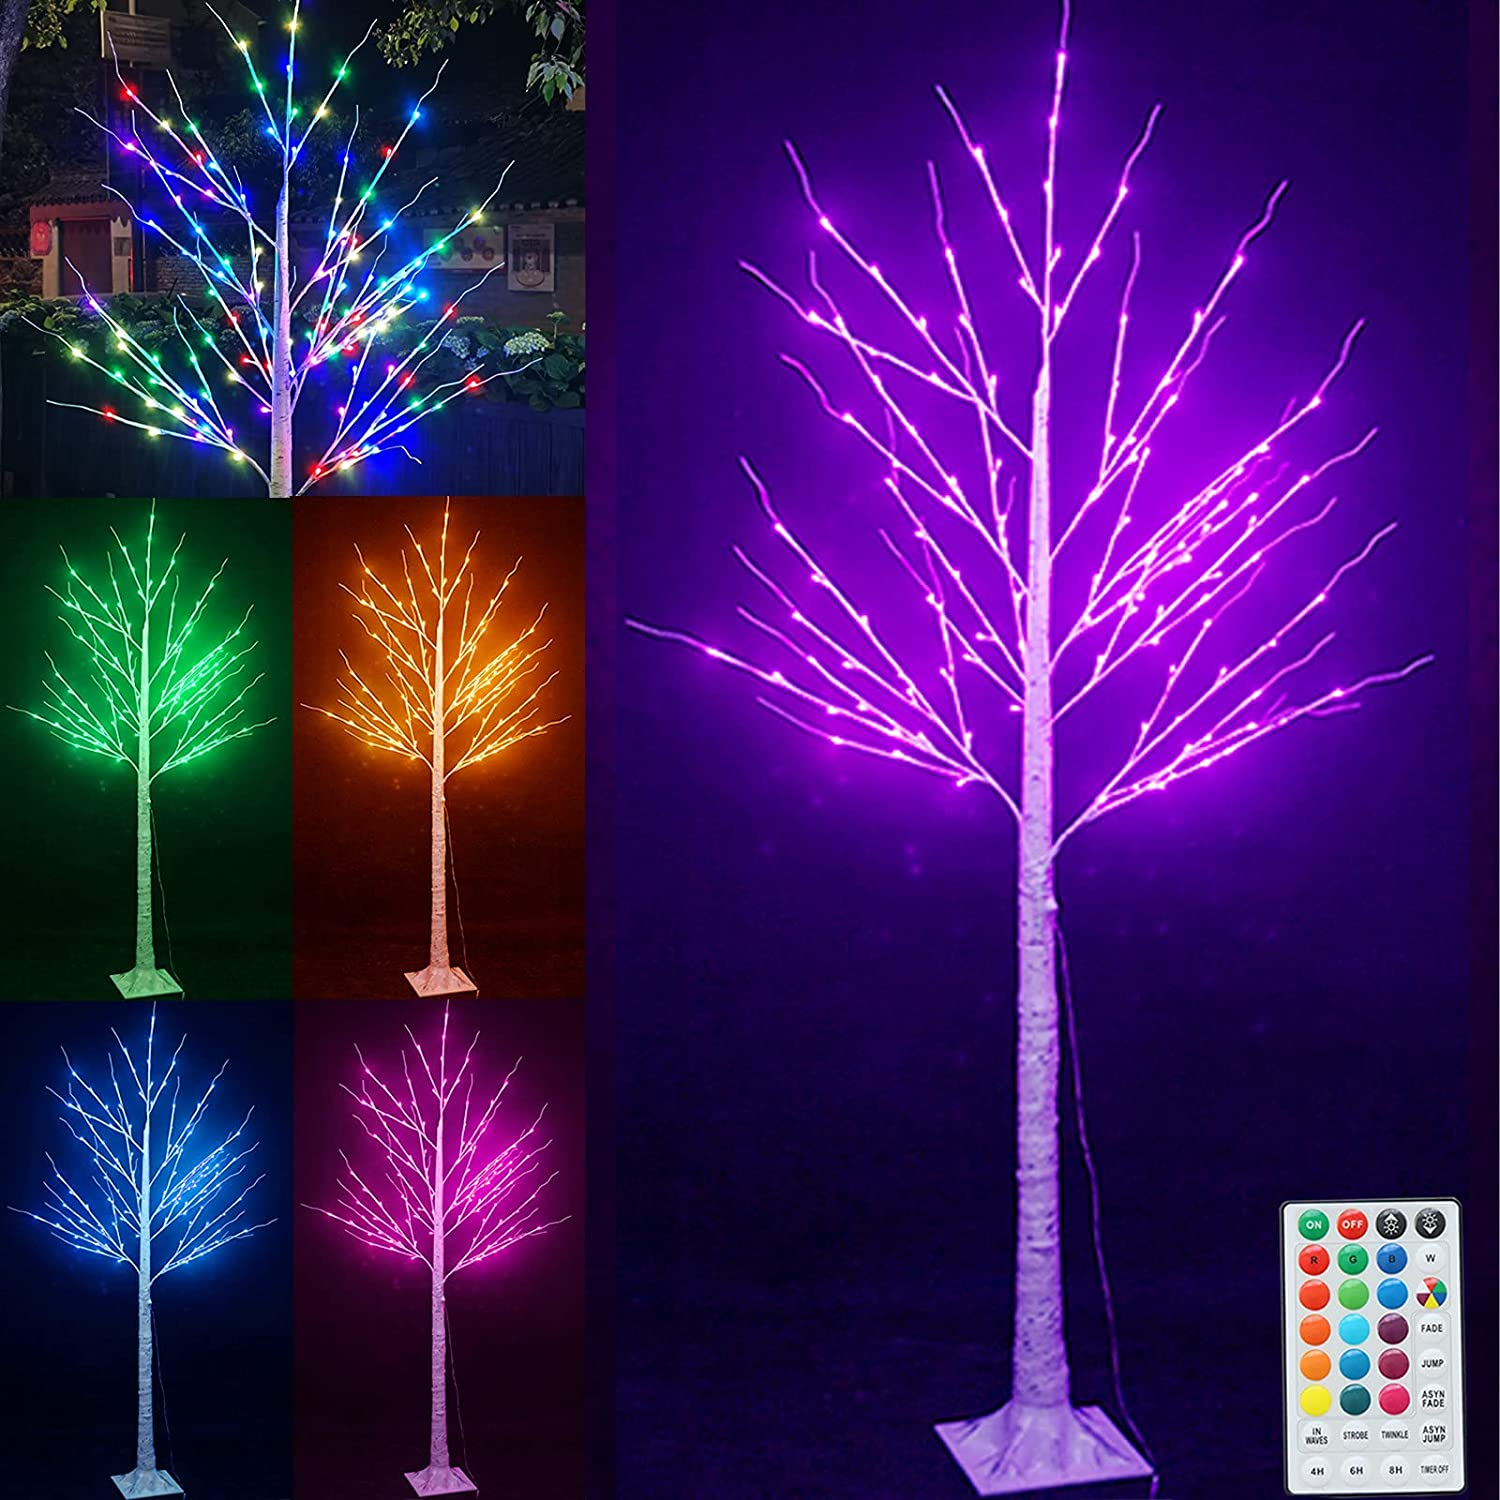 Pooqla 6 ft 120 LED Halloween LightedBirchArtificialTree, Color Changing Light Up Tree with Remote, Christmas White Birch Tree for Indoor Outdoor Thanksgiving Holiday Party Home Yard Decoration RGB